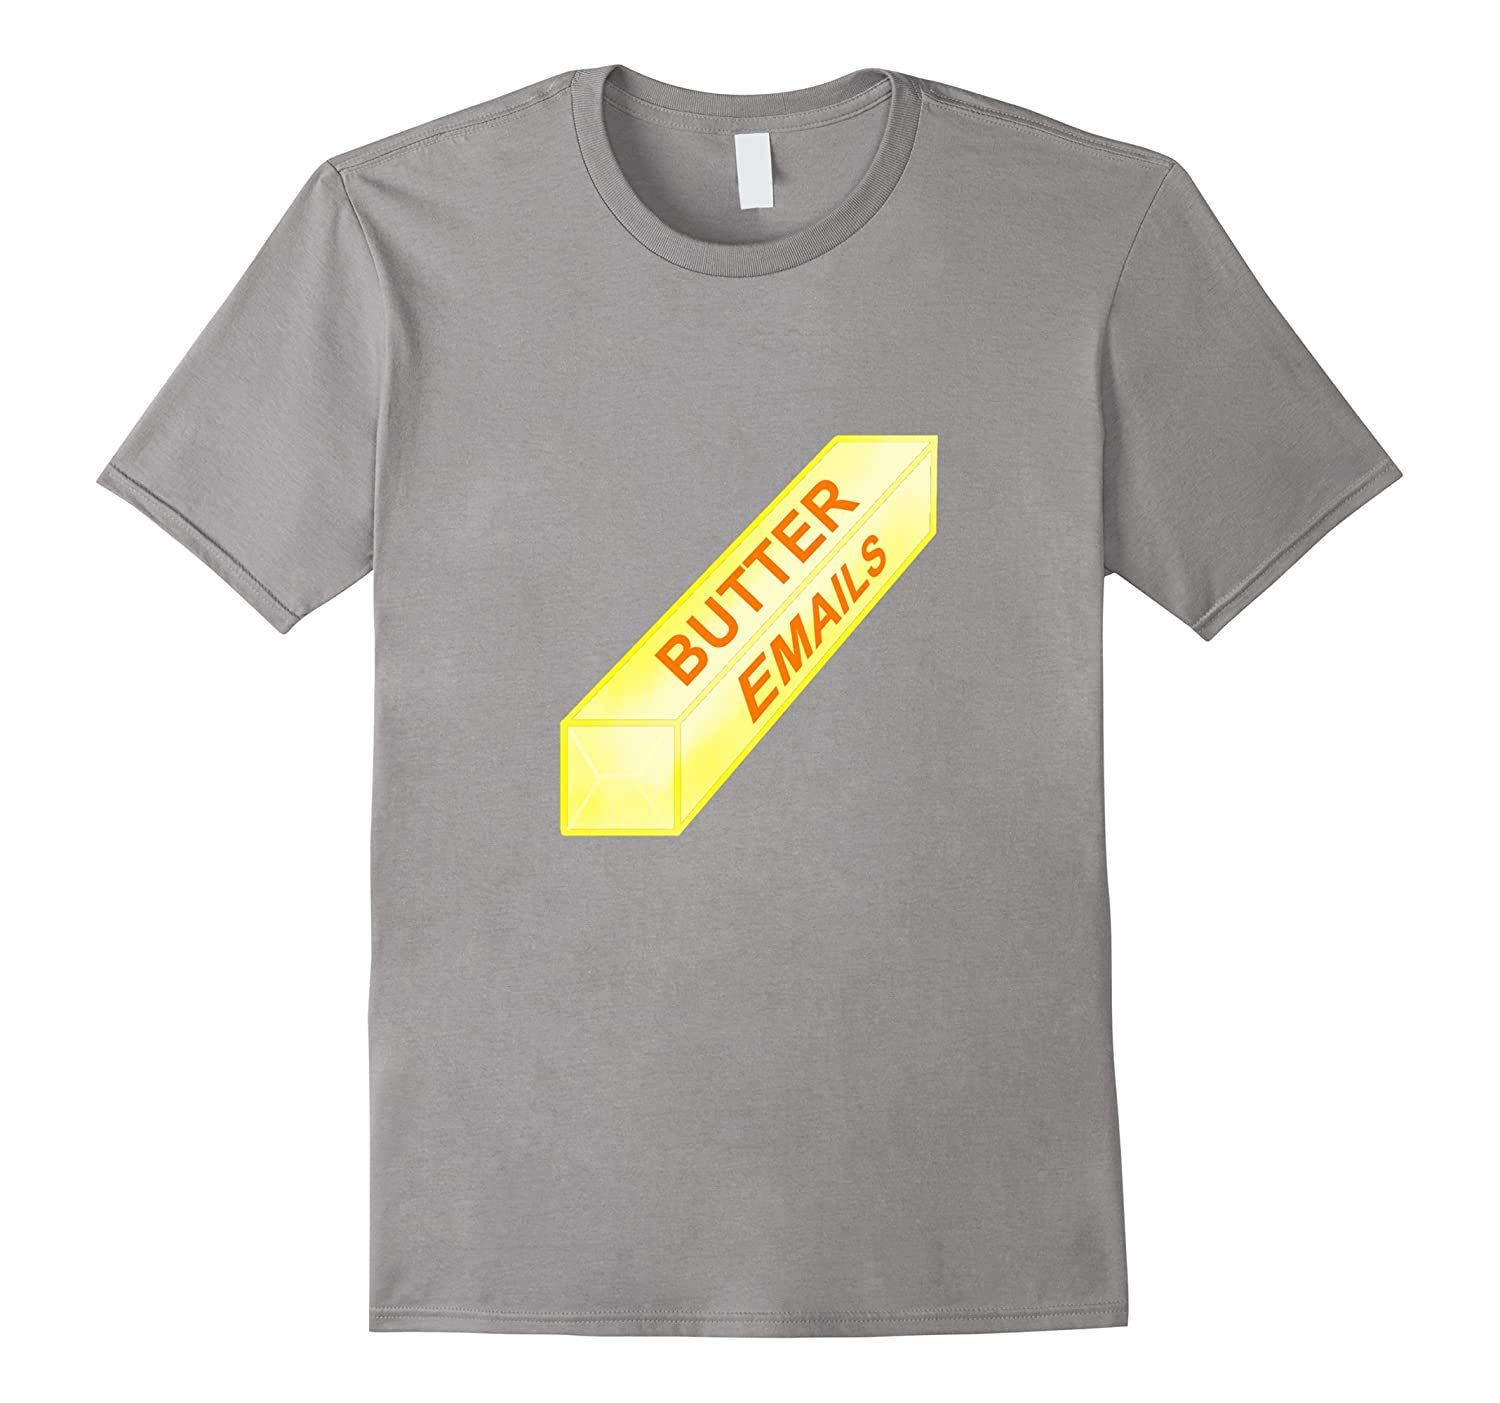 Butter Emails (But Her Emails) – Funny Clinton T-Shirt-Teeae